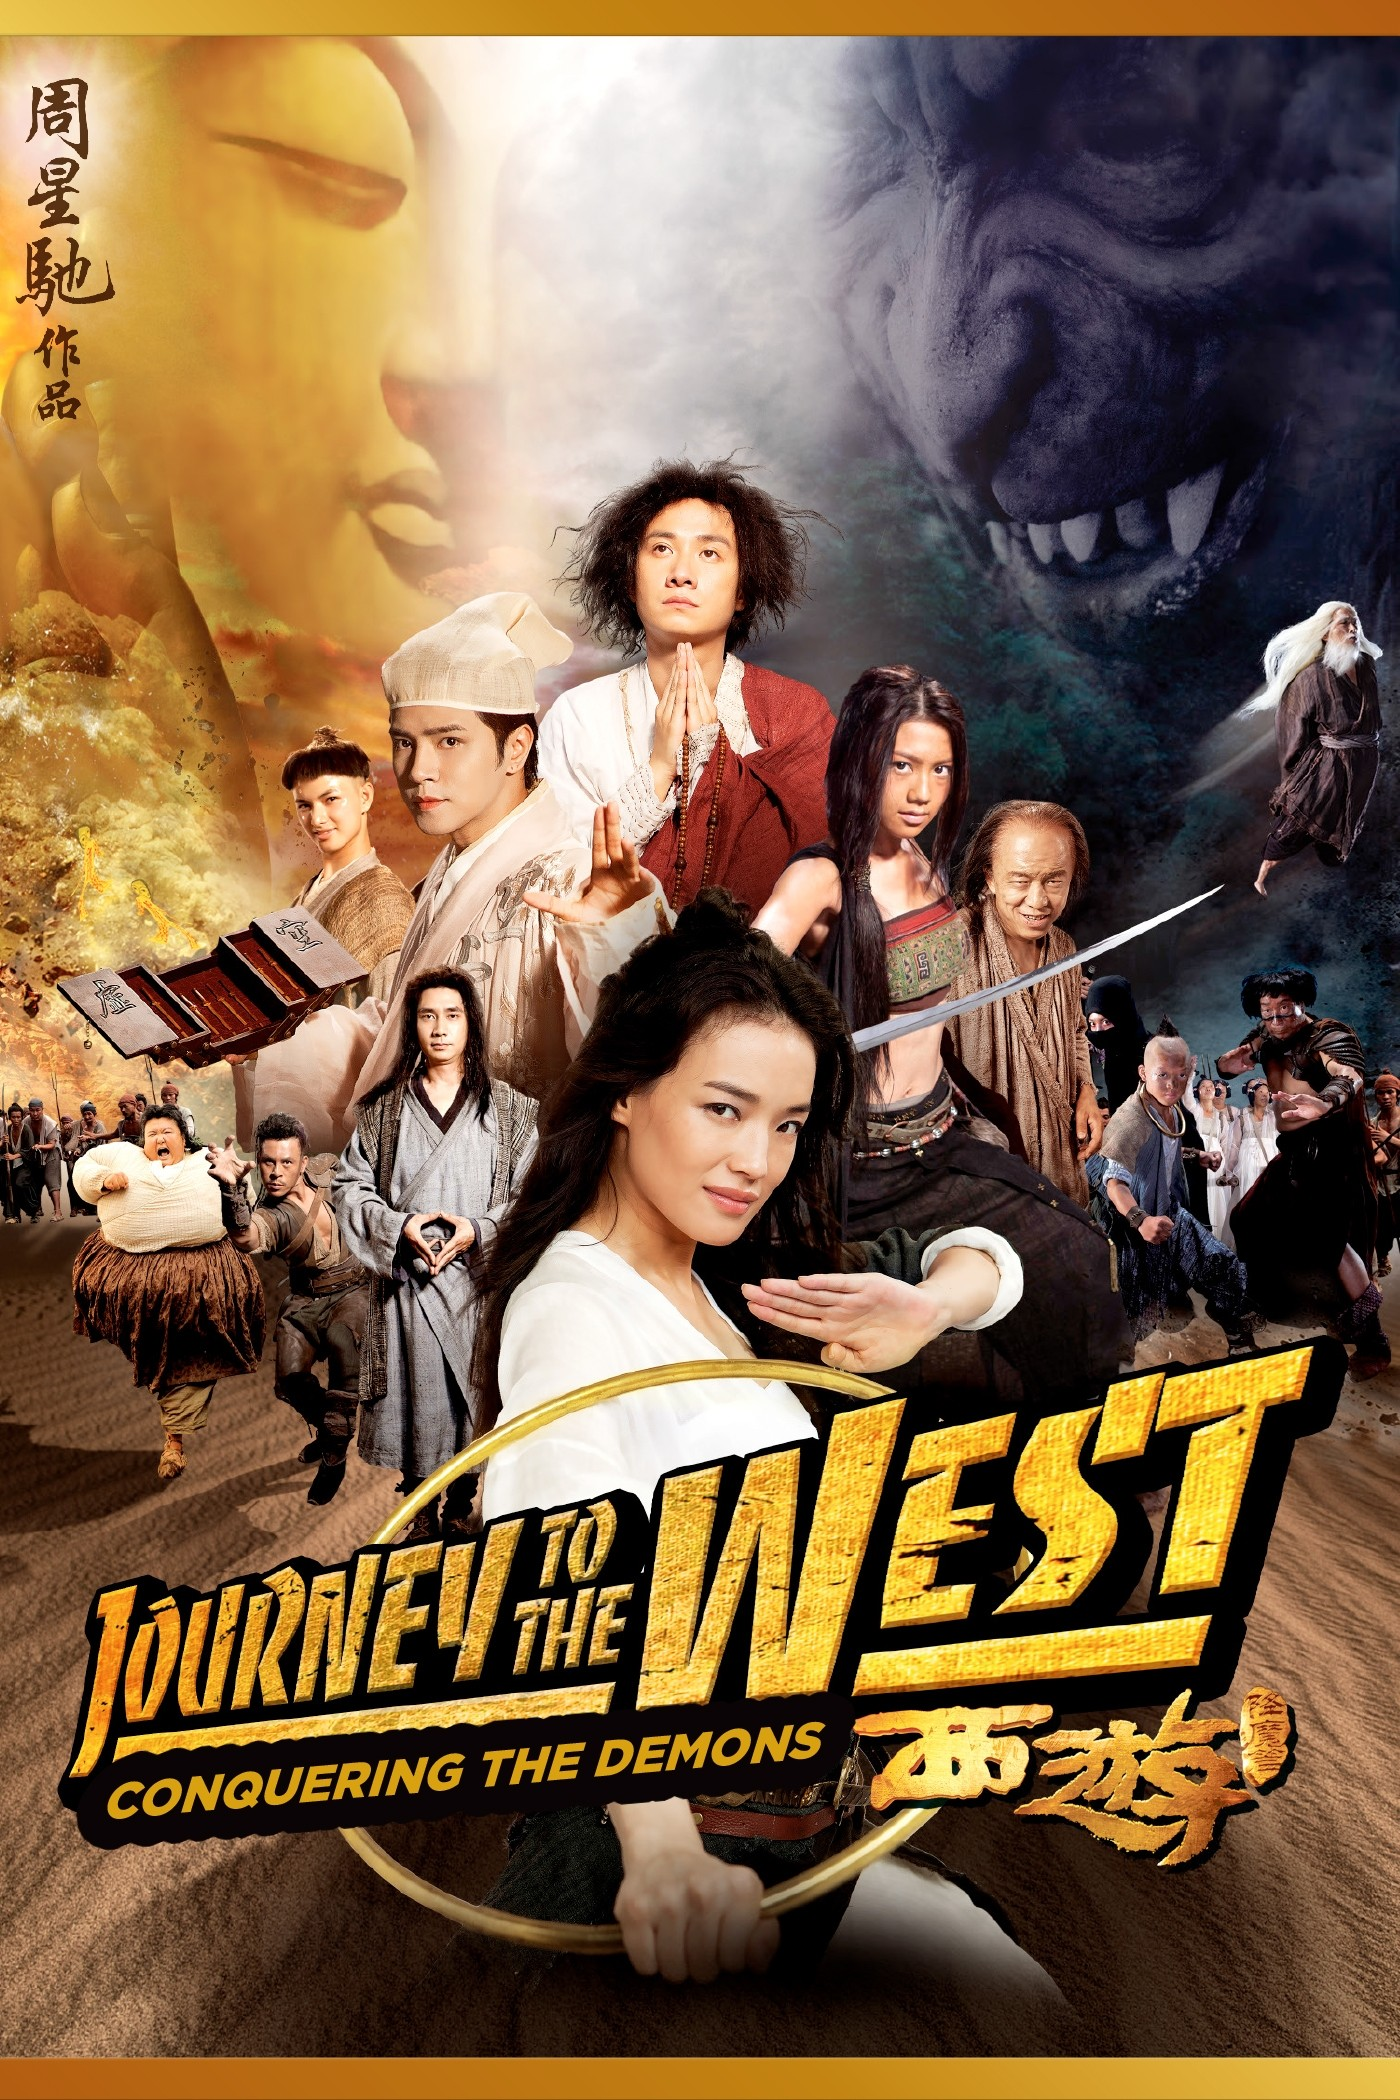 Journey To The West (2021) S01E02 ORG Hindi Dubbed 720p HDRip x264 300MB Download